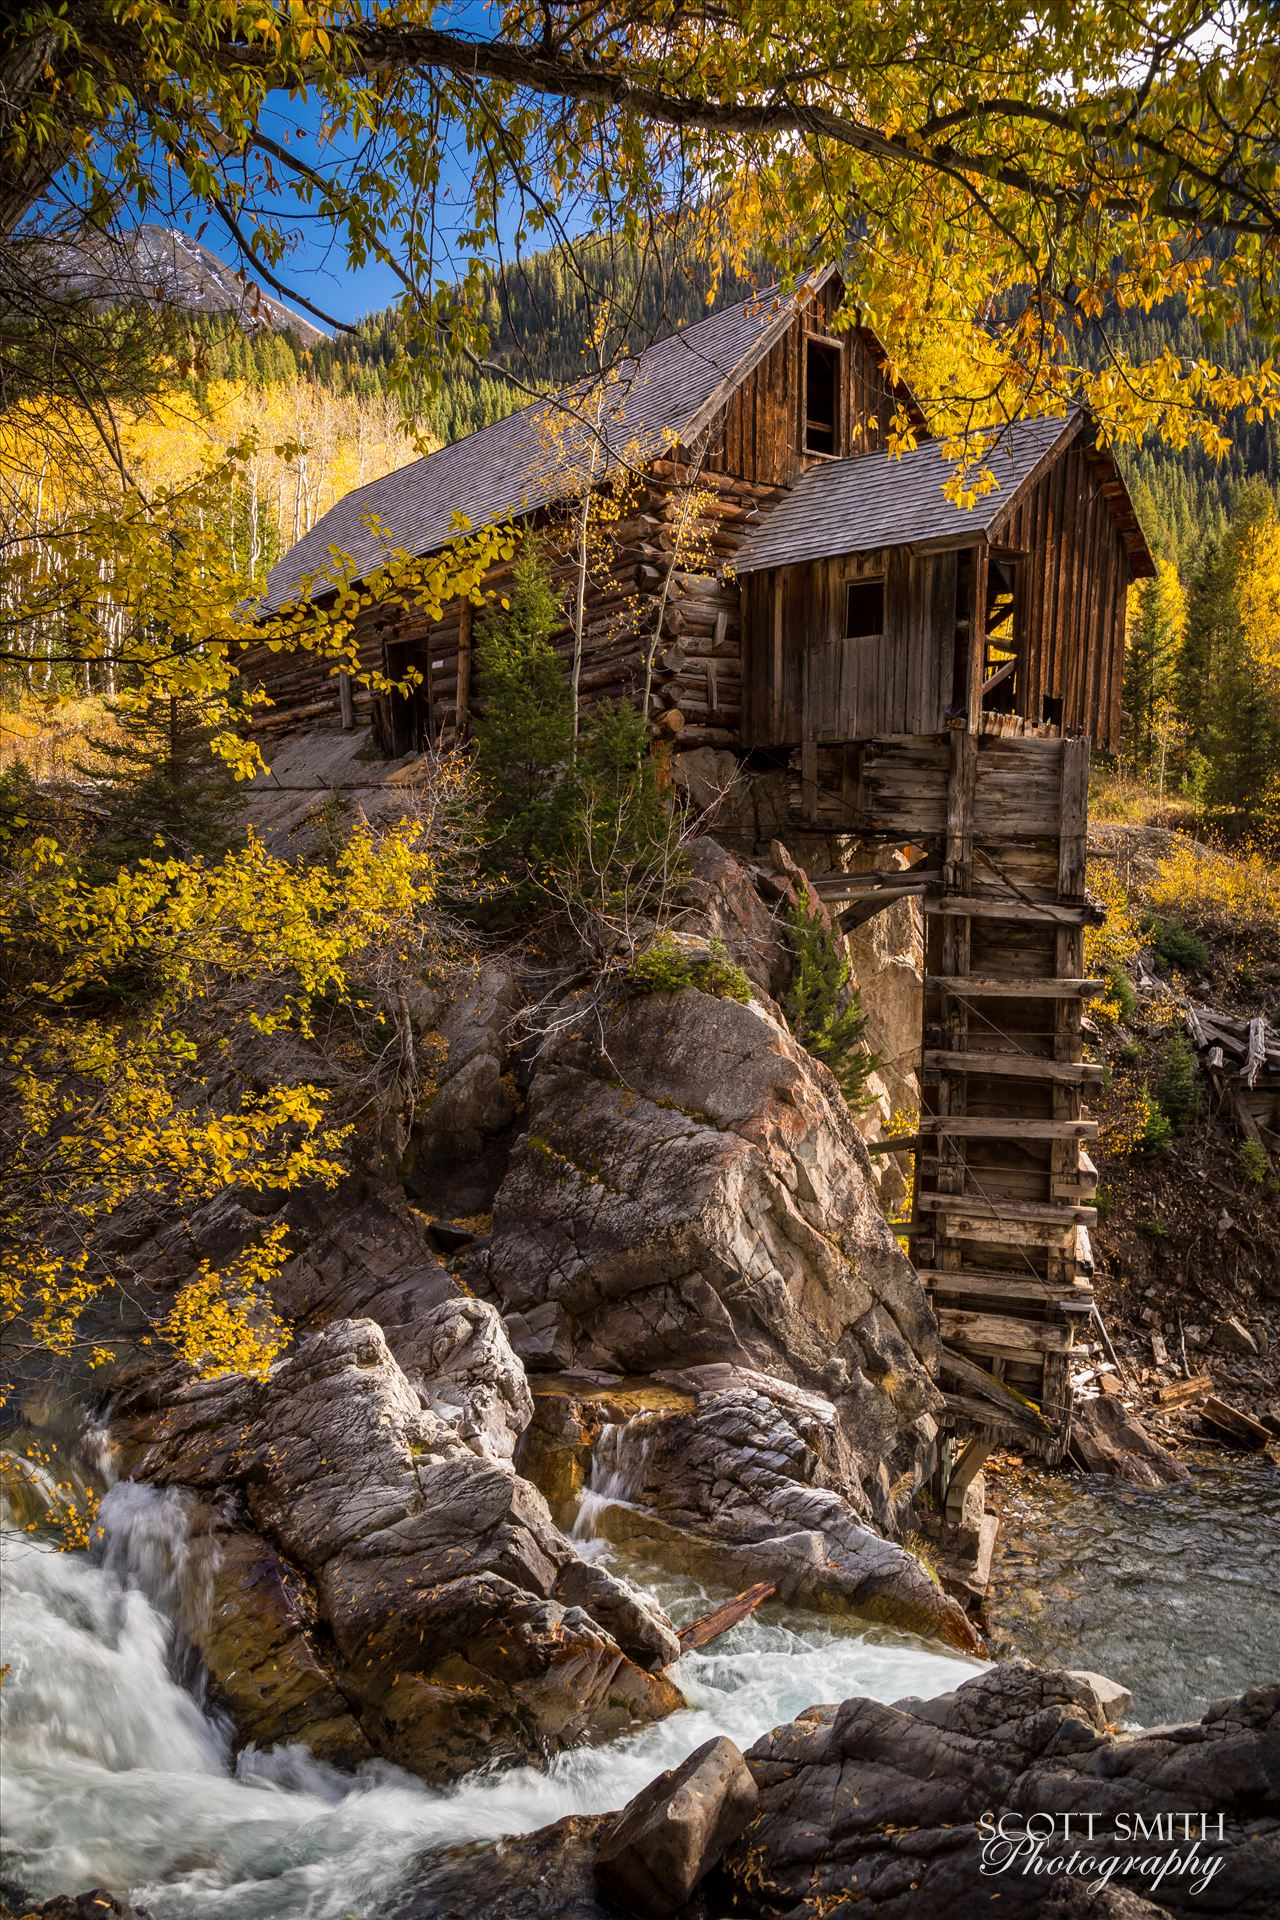 Crystal Mill No 2 - The Crystal Mill, or the Old Mill is an 1892 wooden powerhouse located on an outcrop above the Crystal River in Crystal, Colorado by Scott Smith Photos